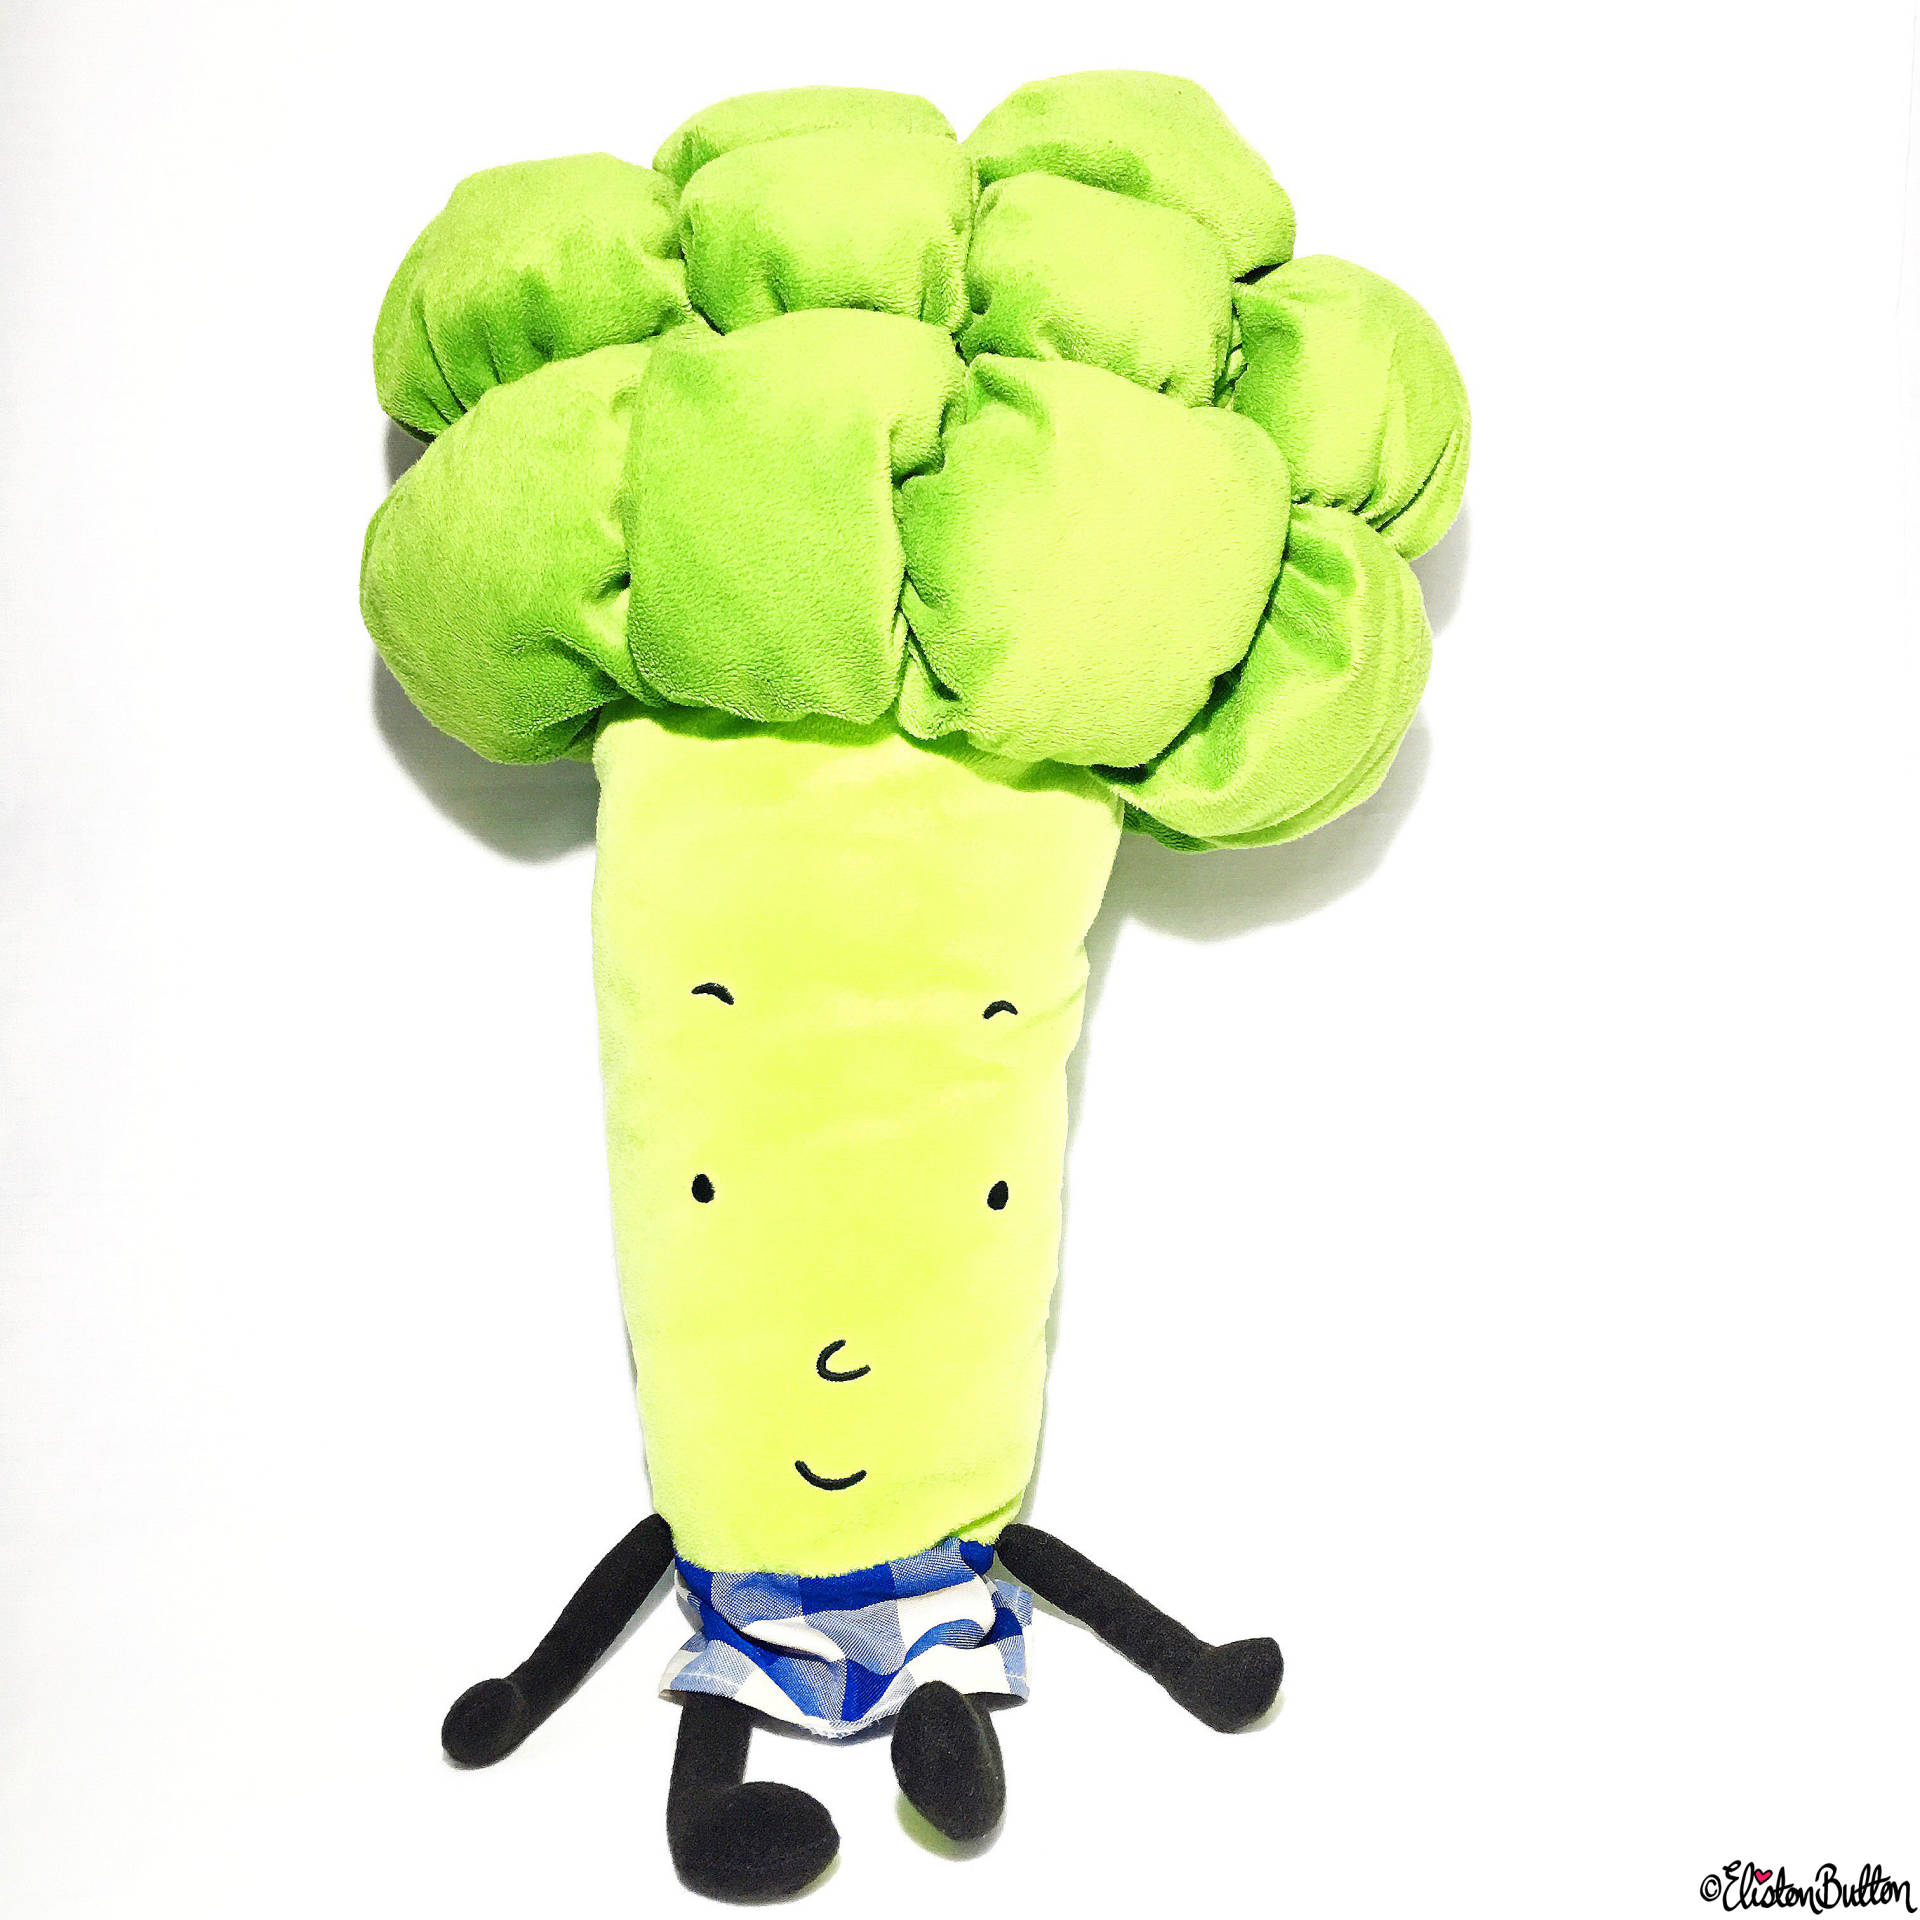 Day 22 - Vegetable - IKEA Broccoli Soft Toy - Photo-a-Day – March 2016 at www.elistonbutton.com - Eliston Button - That Crafty Kid – Art, Design, Craft & Adventure.